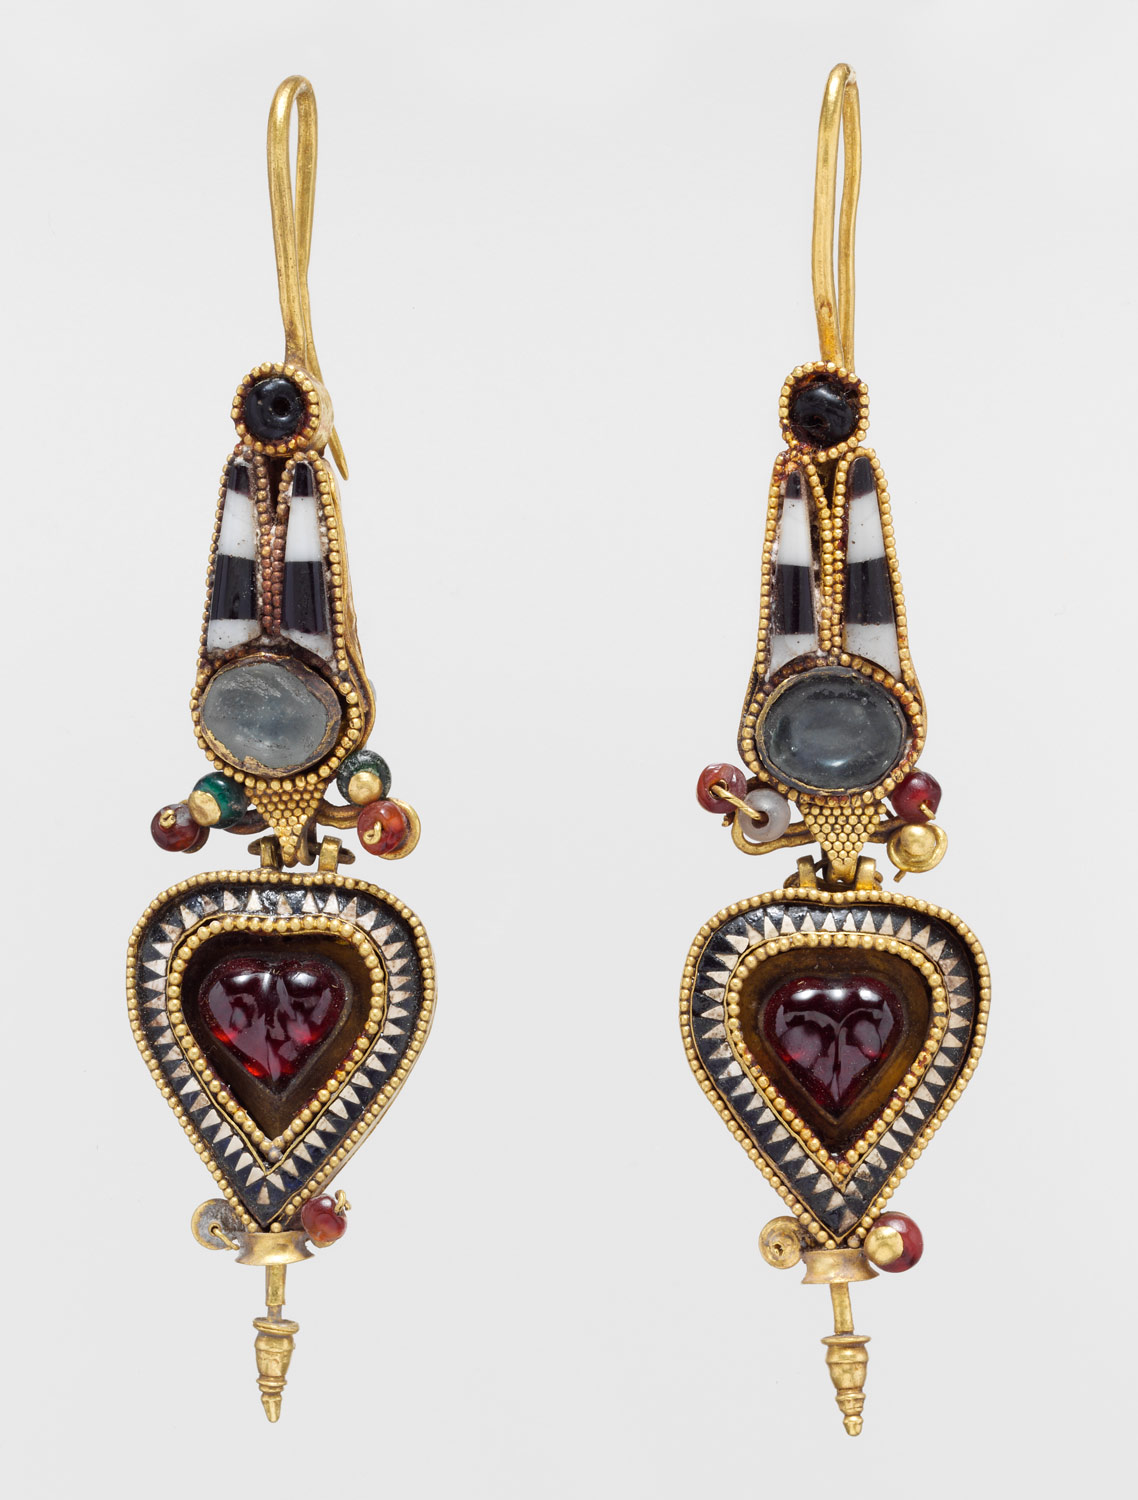 ancient Egyptian earrings